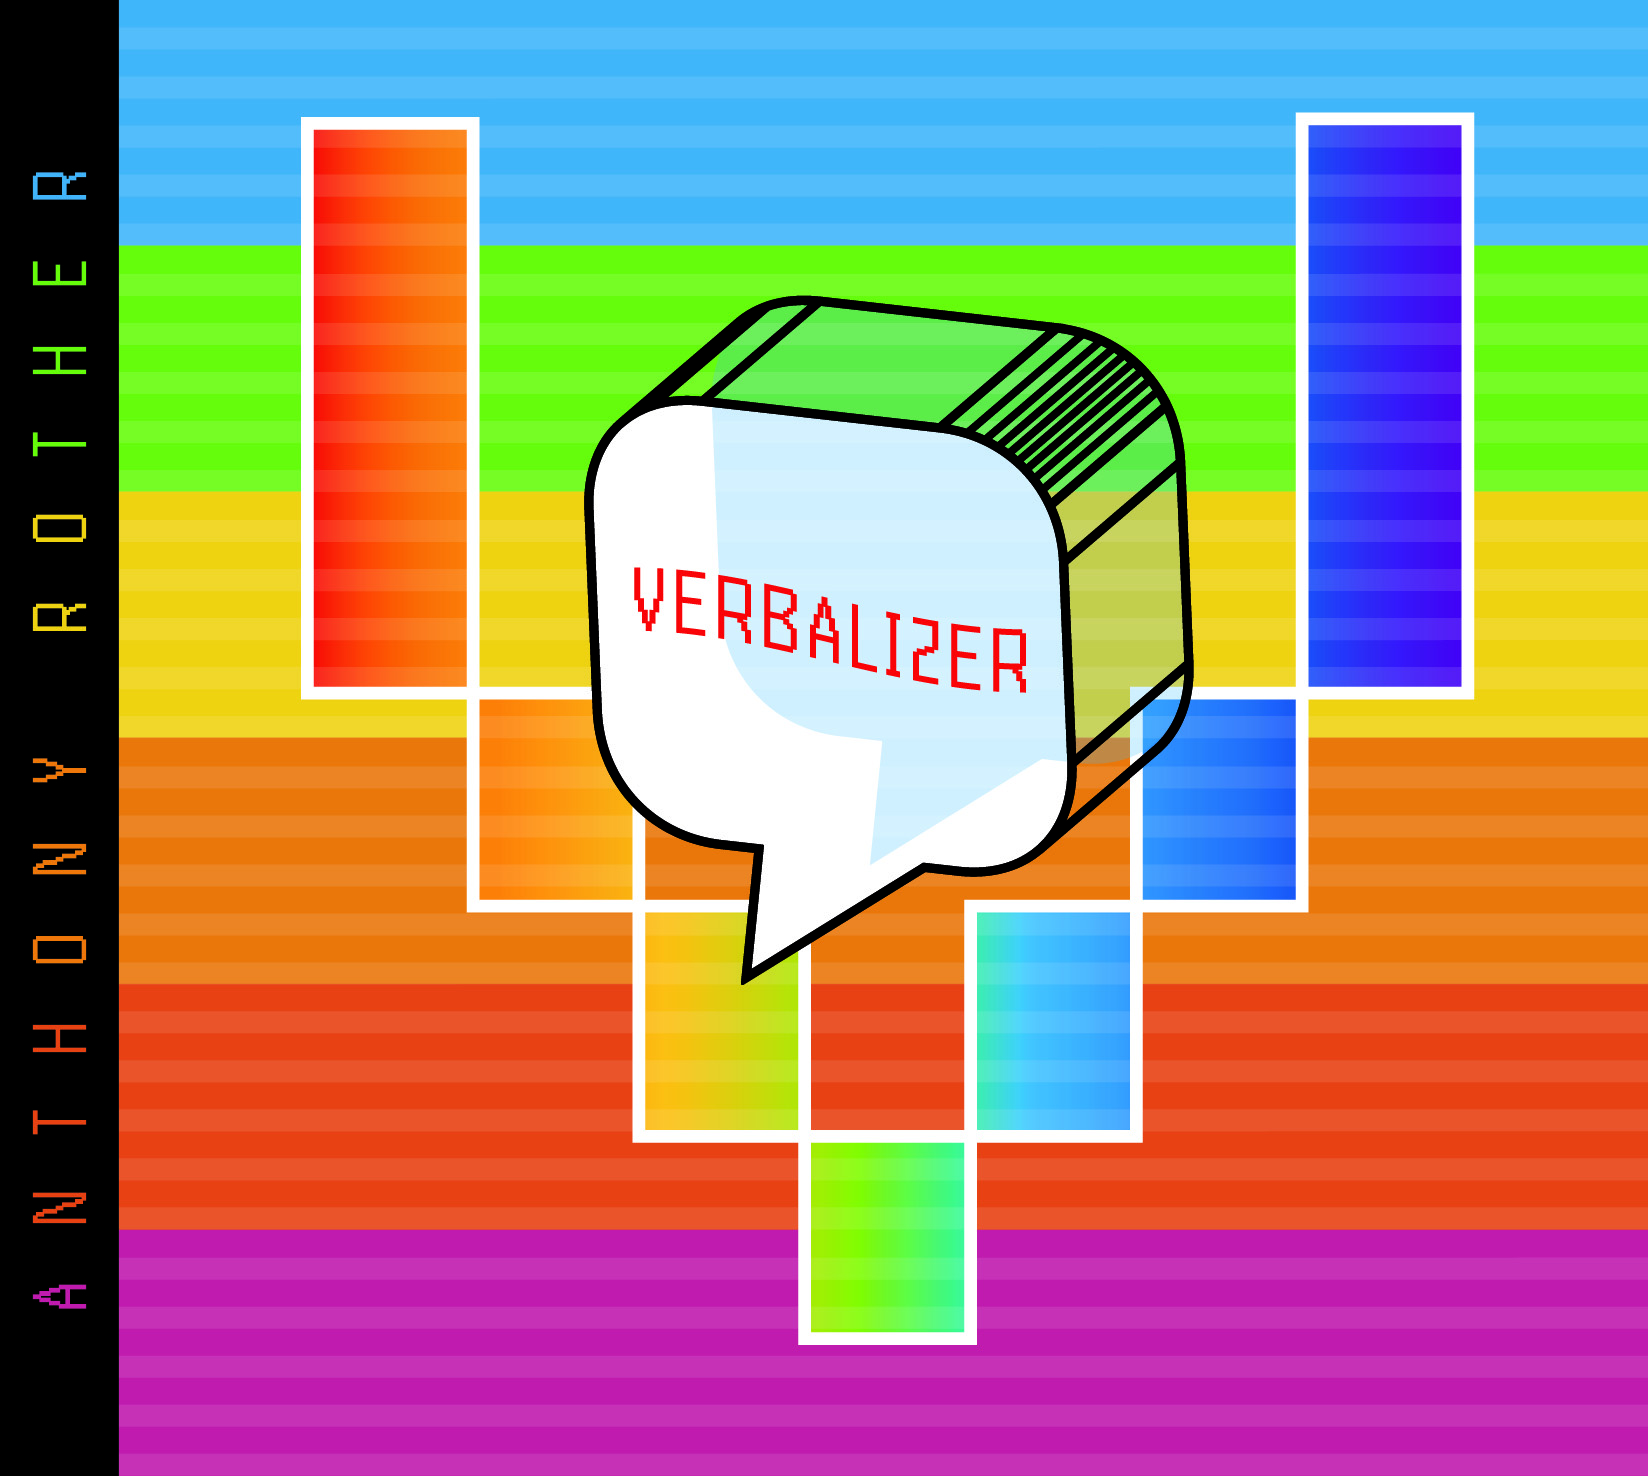 Anthony Rother – Verbalizer (nxtdata)